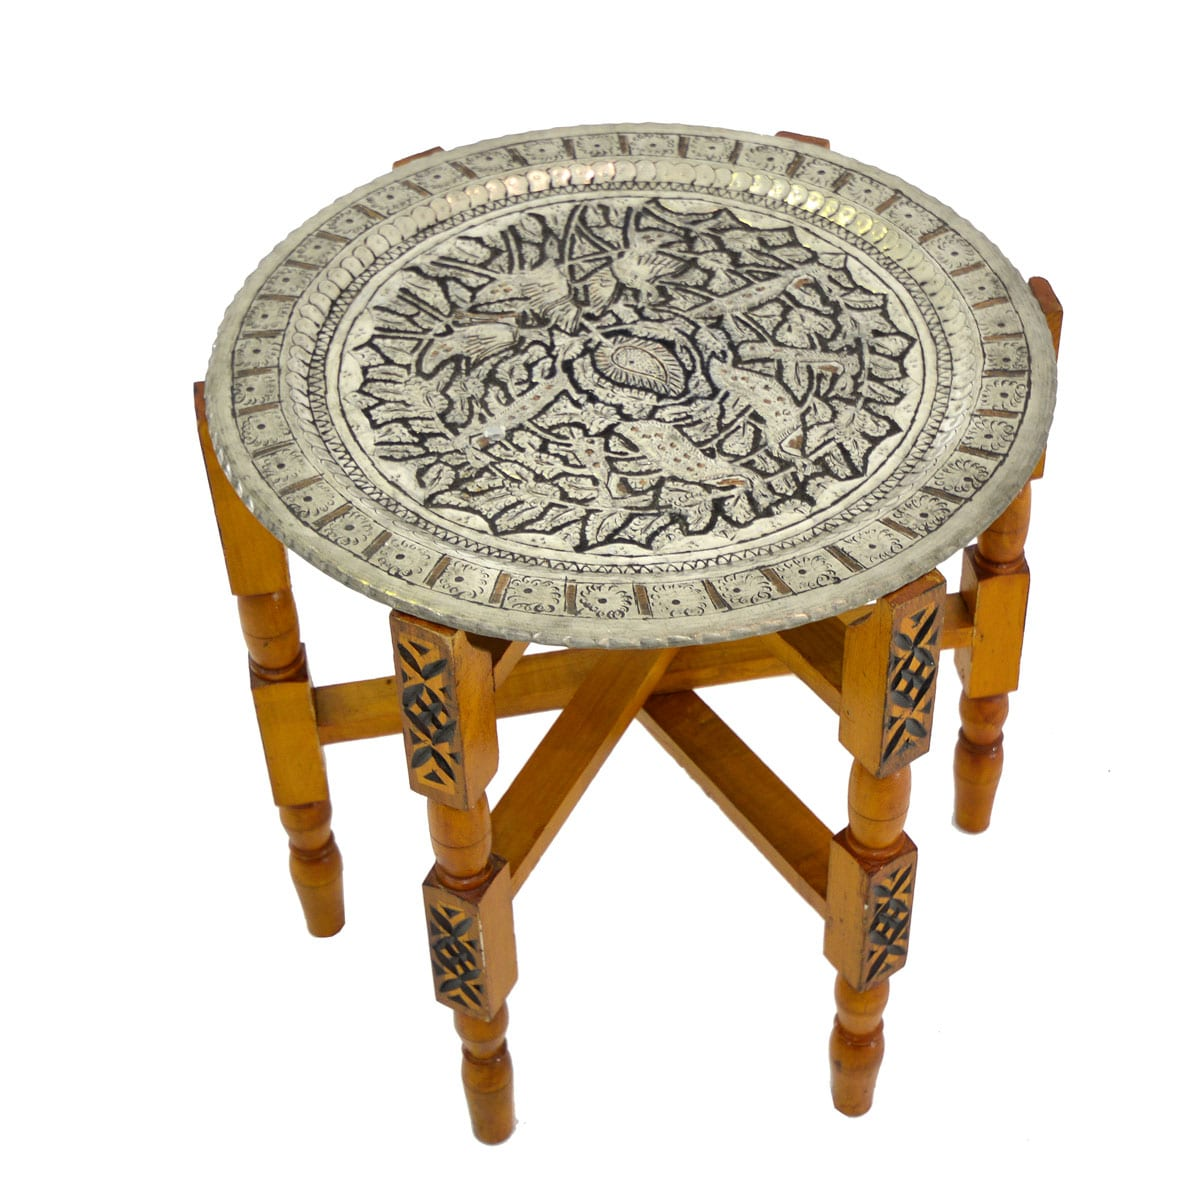 Two Piece Moroccan Style Table